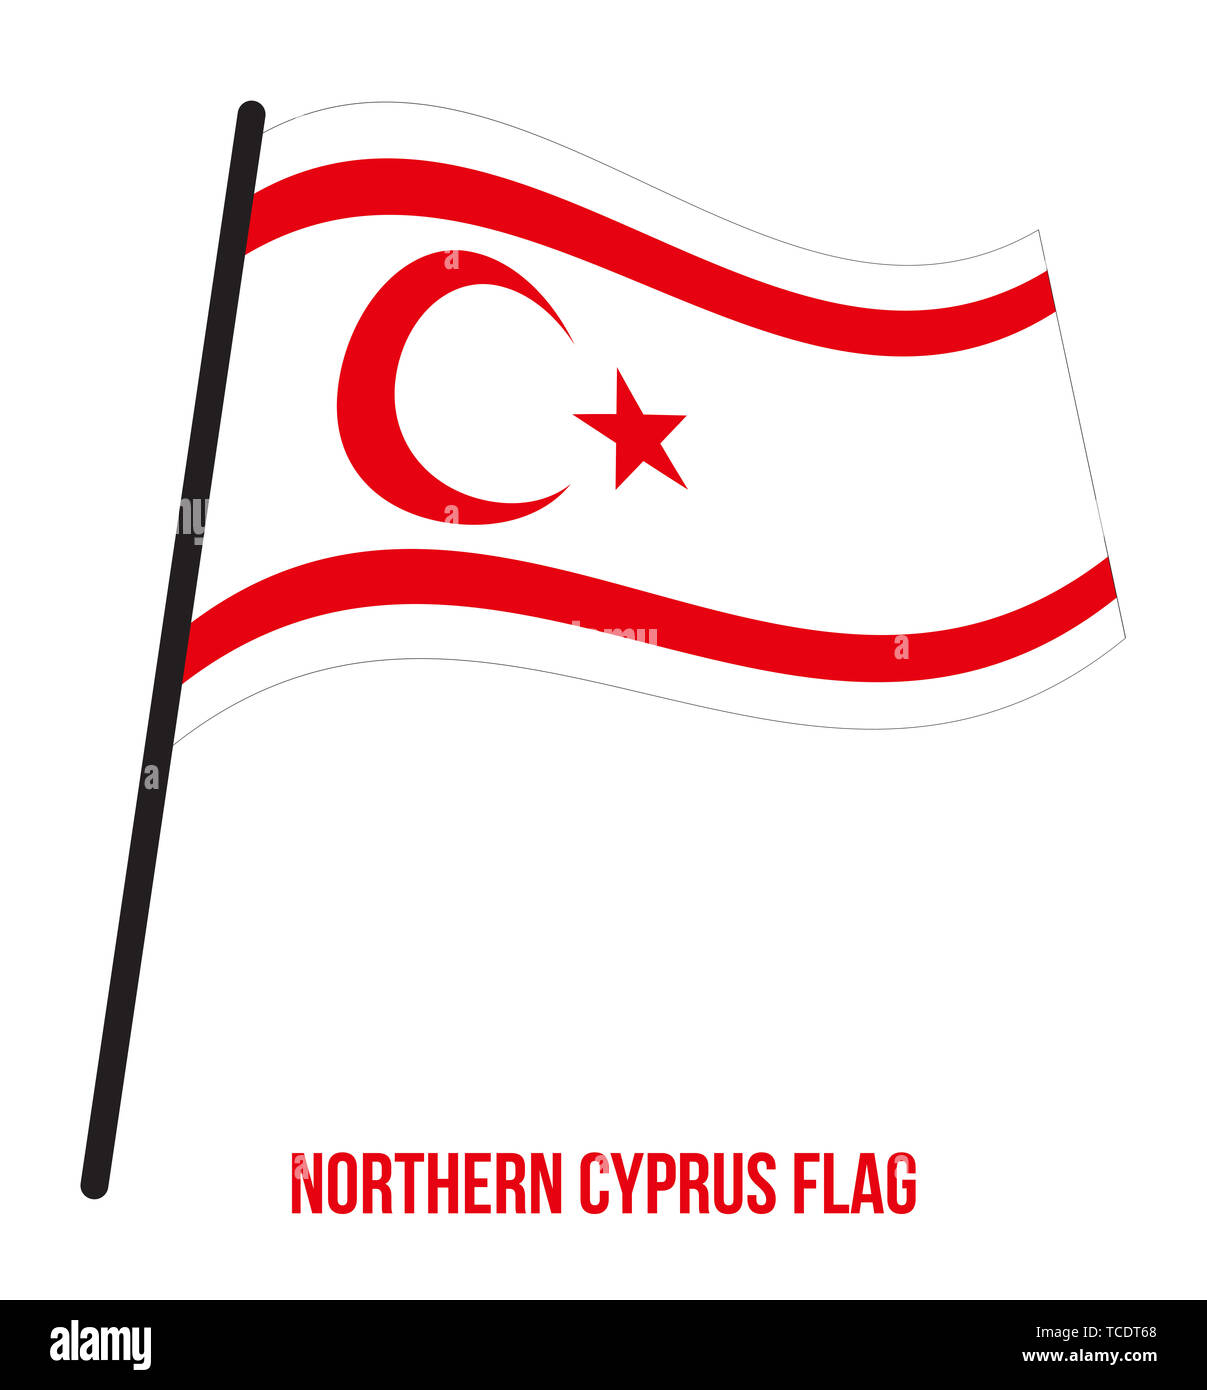 Northern Cyprus Flag Waving Vector Illustration on White Background. Northern Cyprus National Flag. - Stock Image